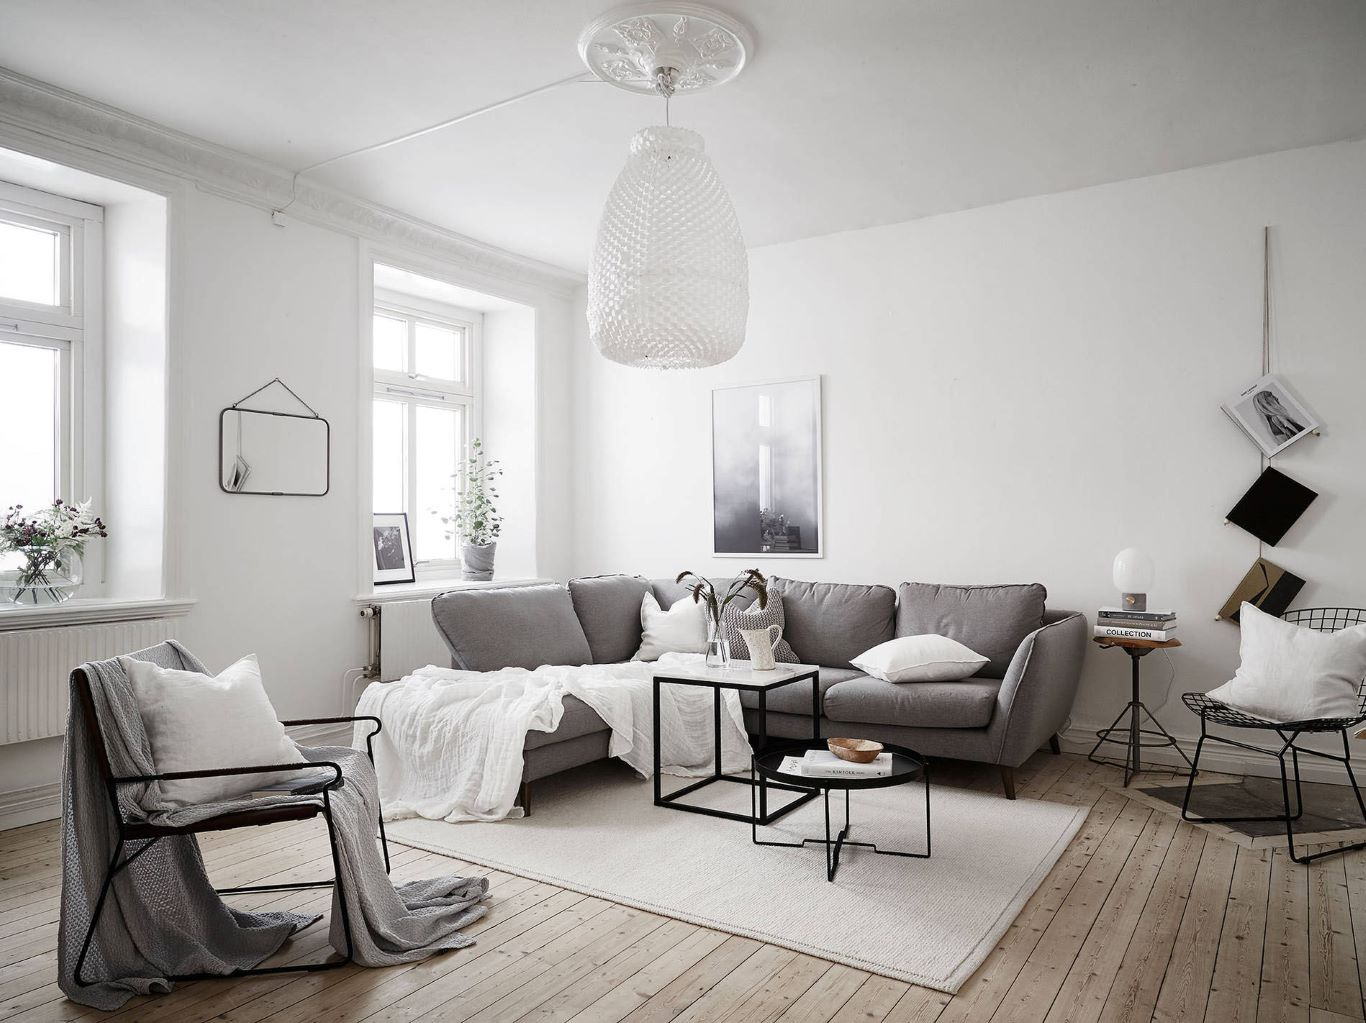 Monochromatic gray accents in a Scandinavian living space